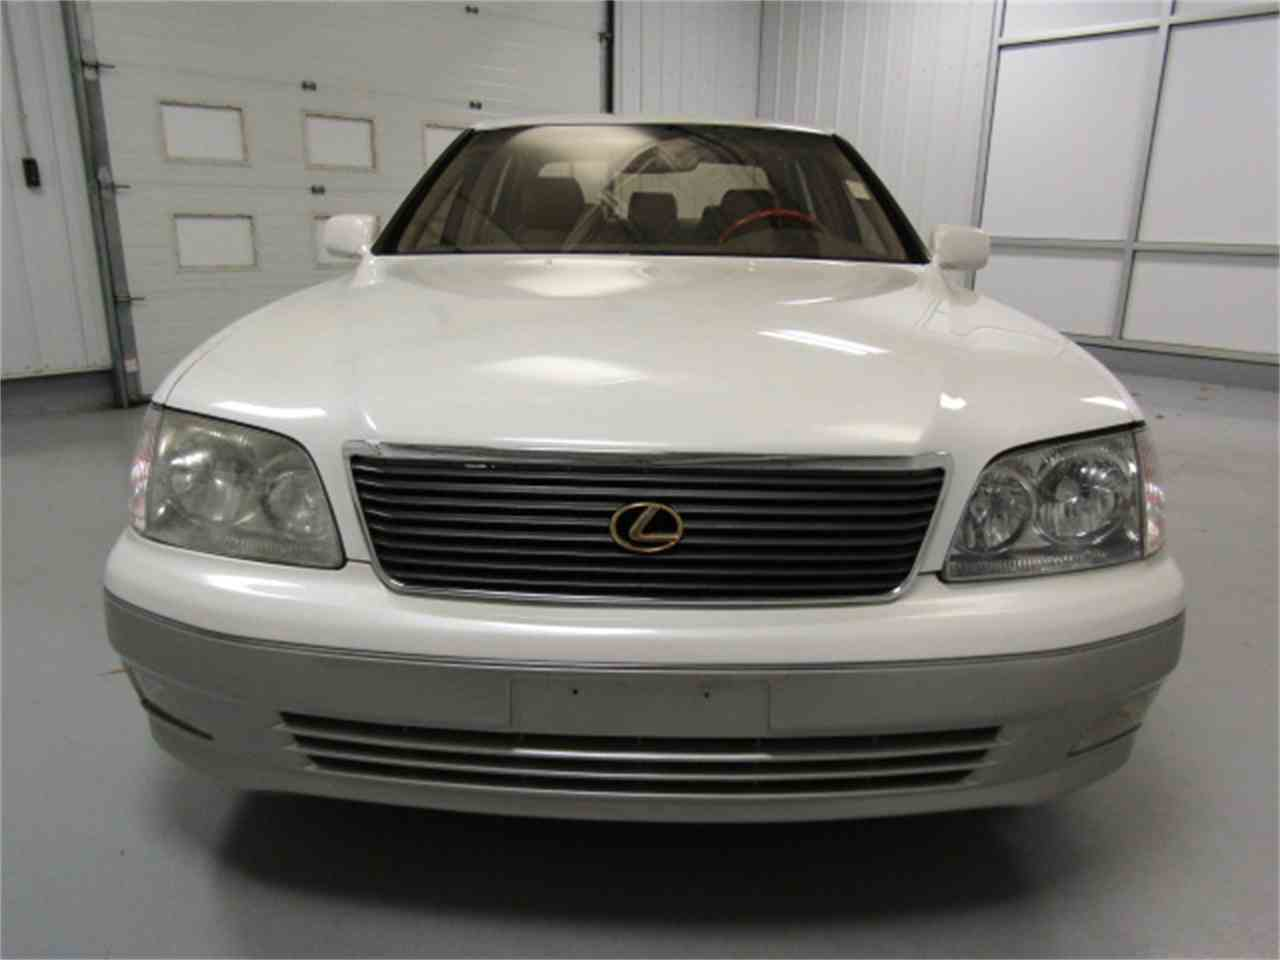 Large Picture of 1999 LS400 located in Virginia - $8,994.00 Offered by Duncan Imports & Classic Cars - JM33